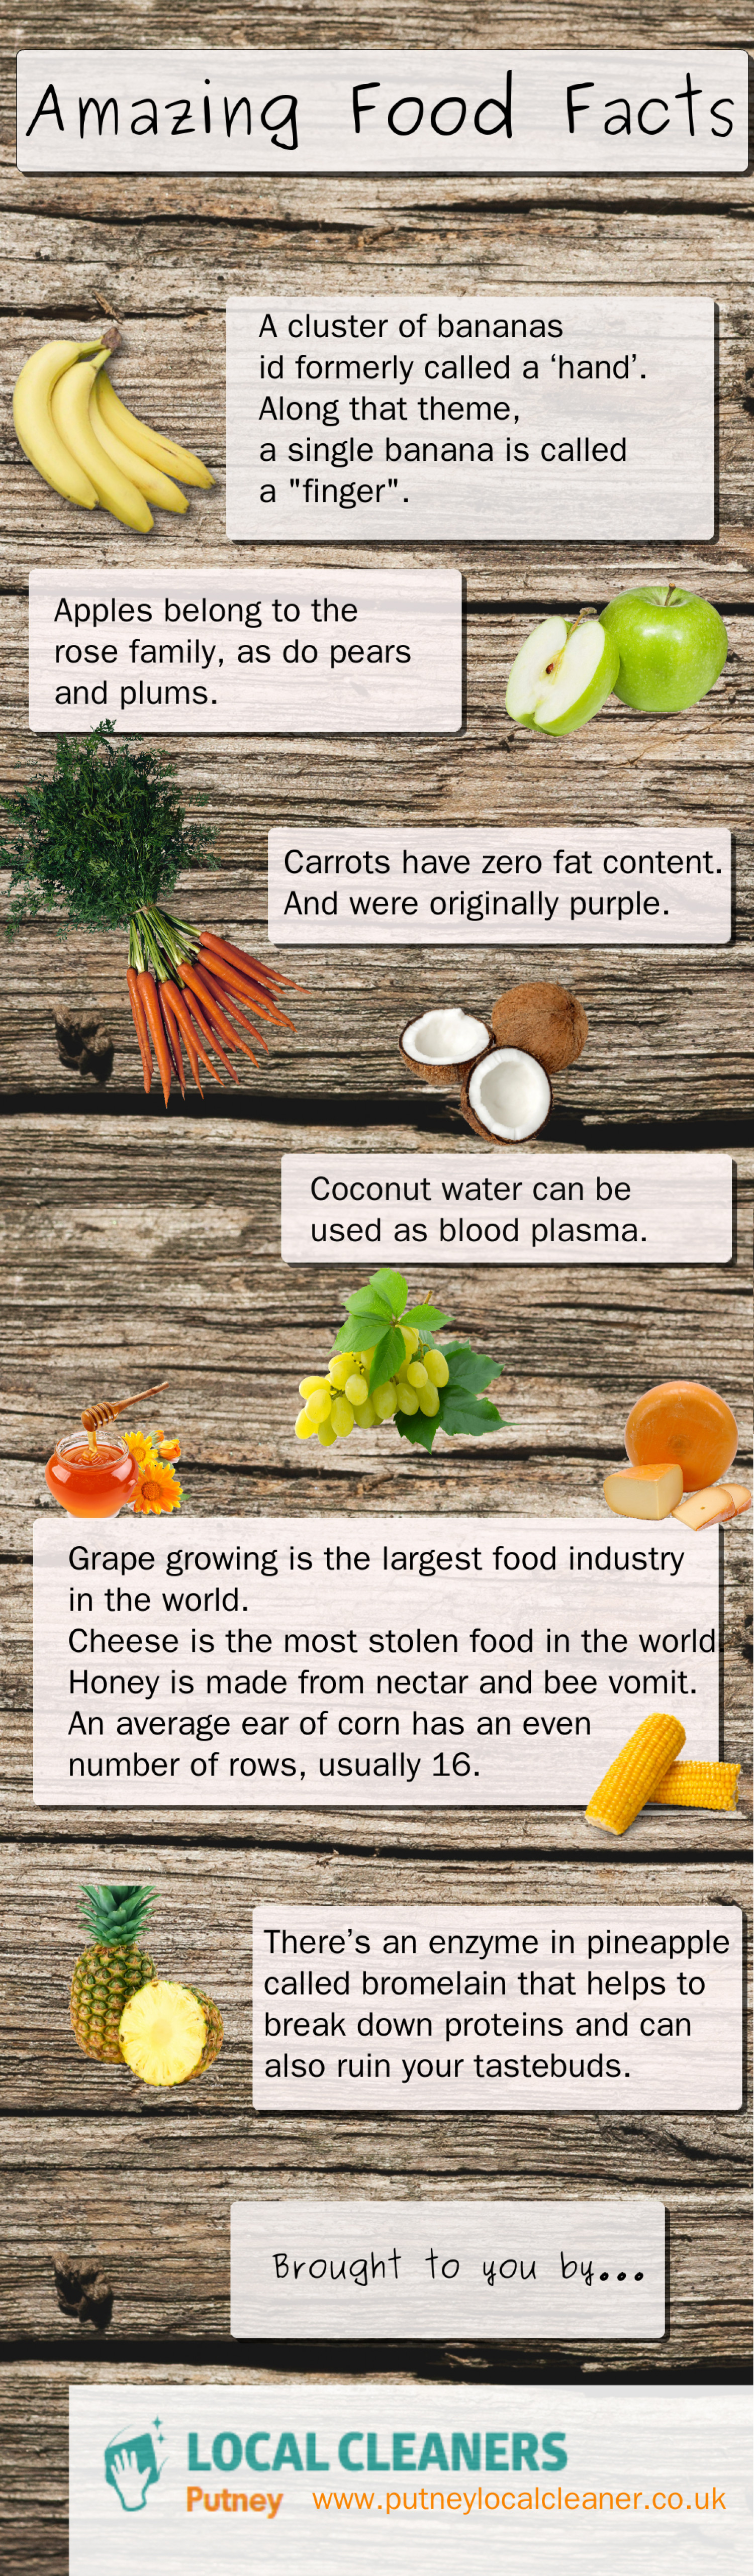 Amazing Food Facts Infographic